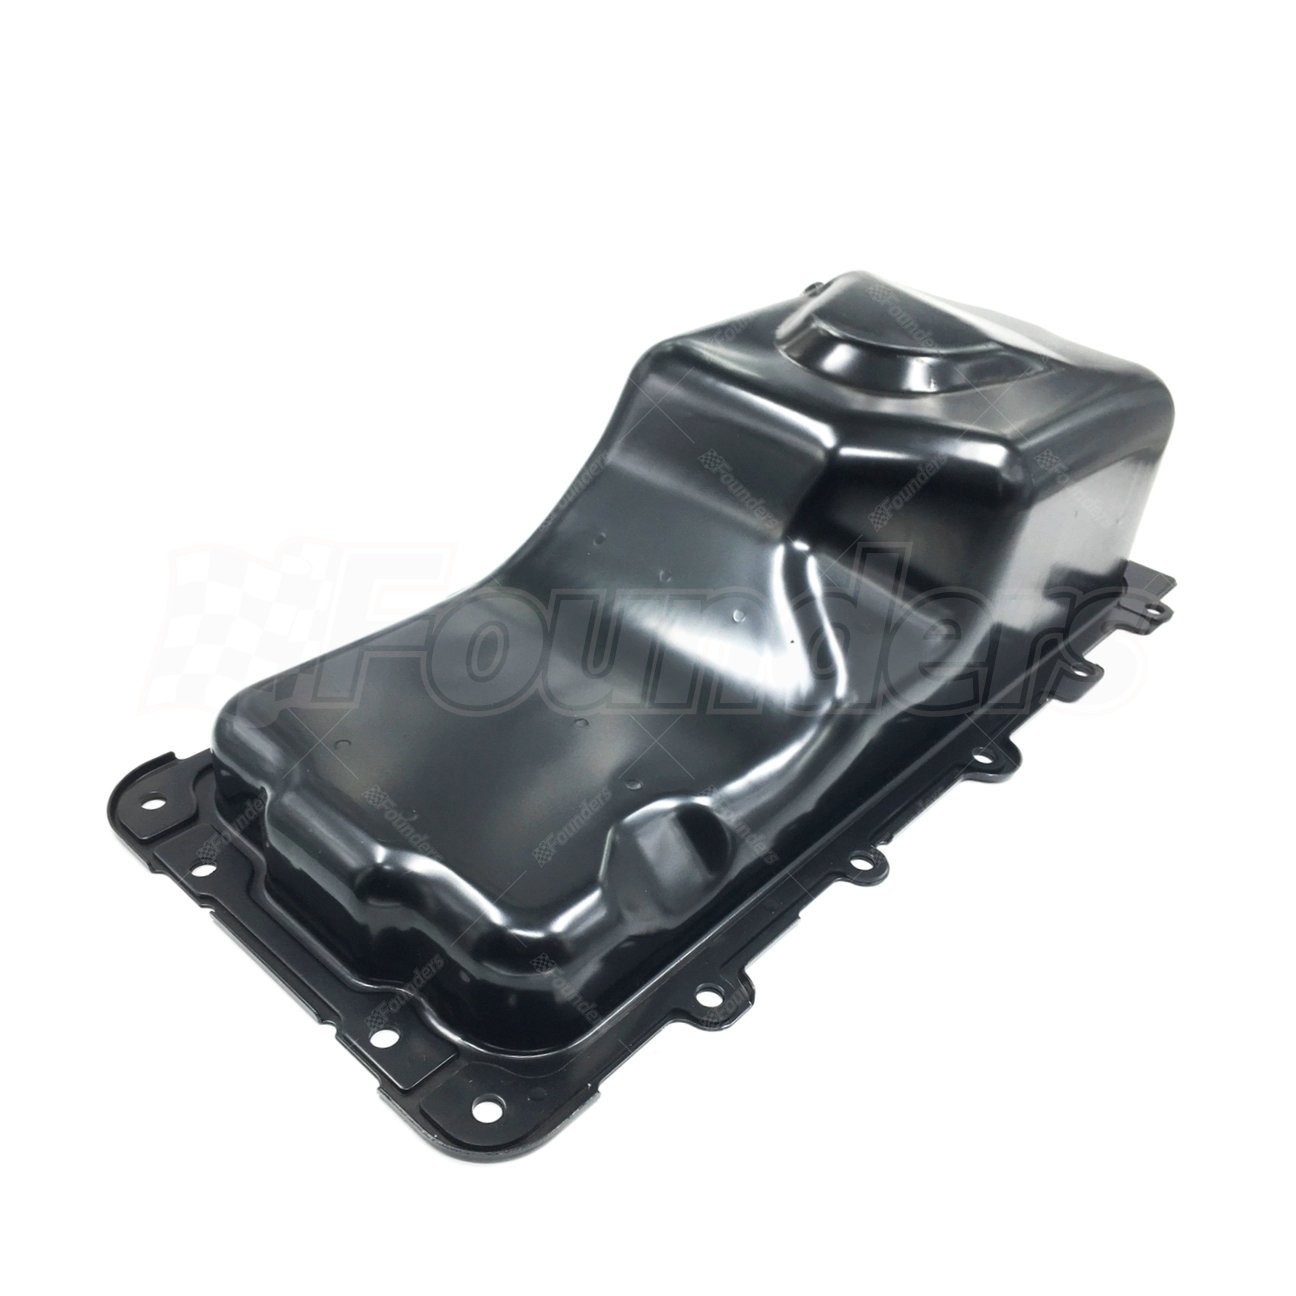 Oil Pan Fits Ford Mustang  2004 2003 2002 2001 V8 4.6L 264-453